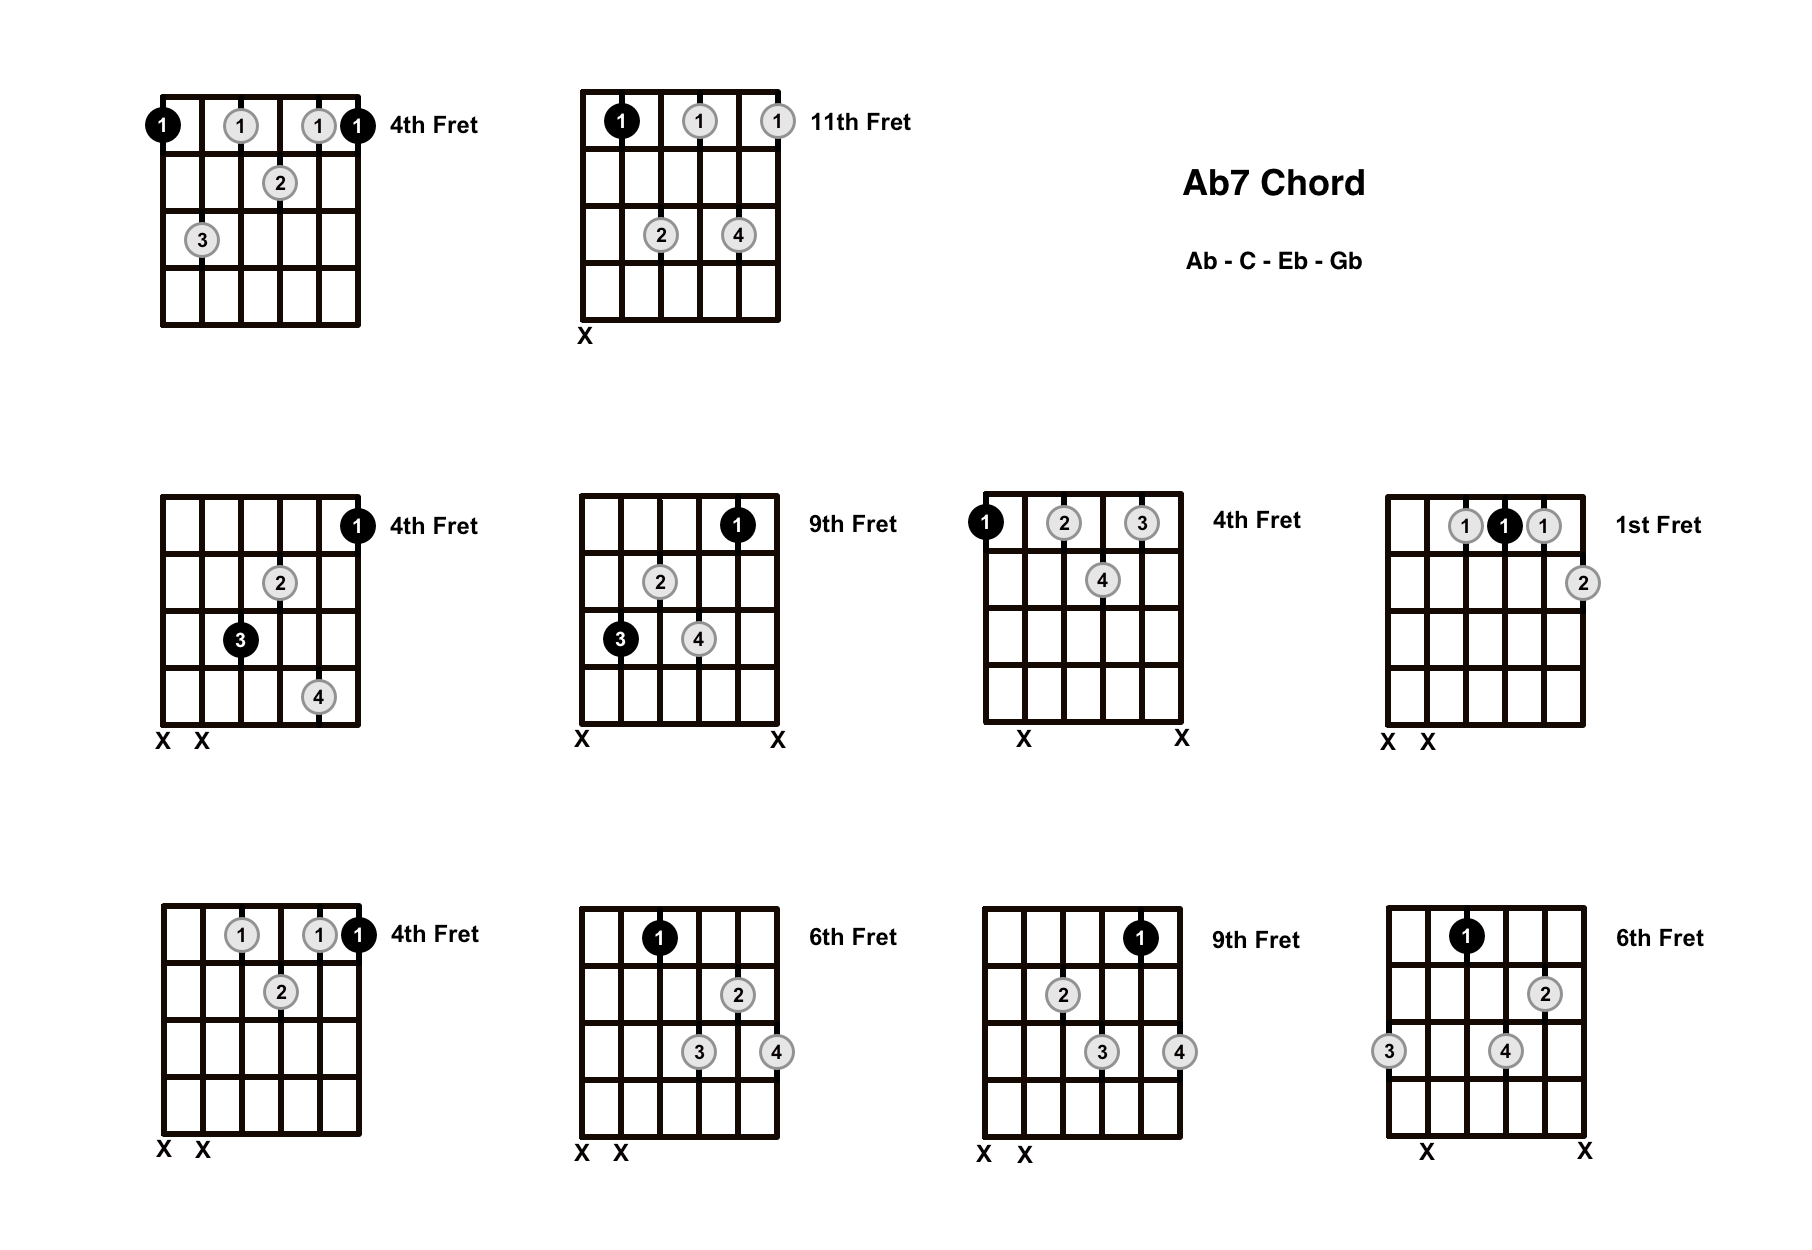 Ab7 Chord On The Guitar (A Flat Dominant 7) – Diagrams, Finger Positions and Theory